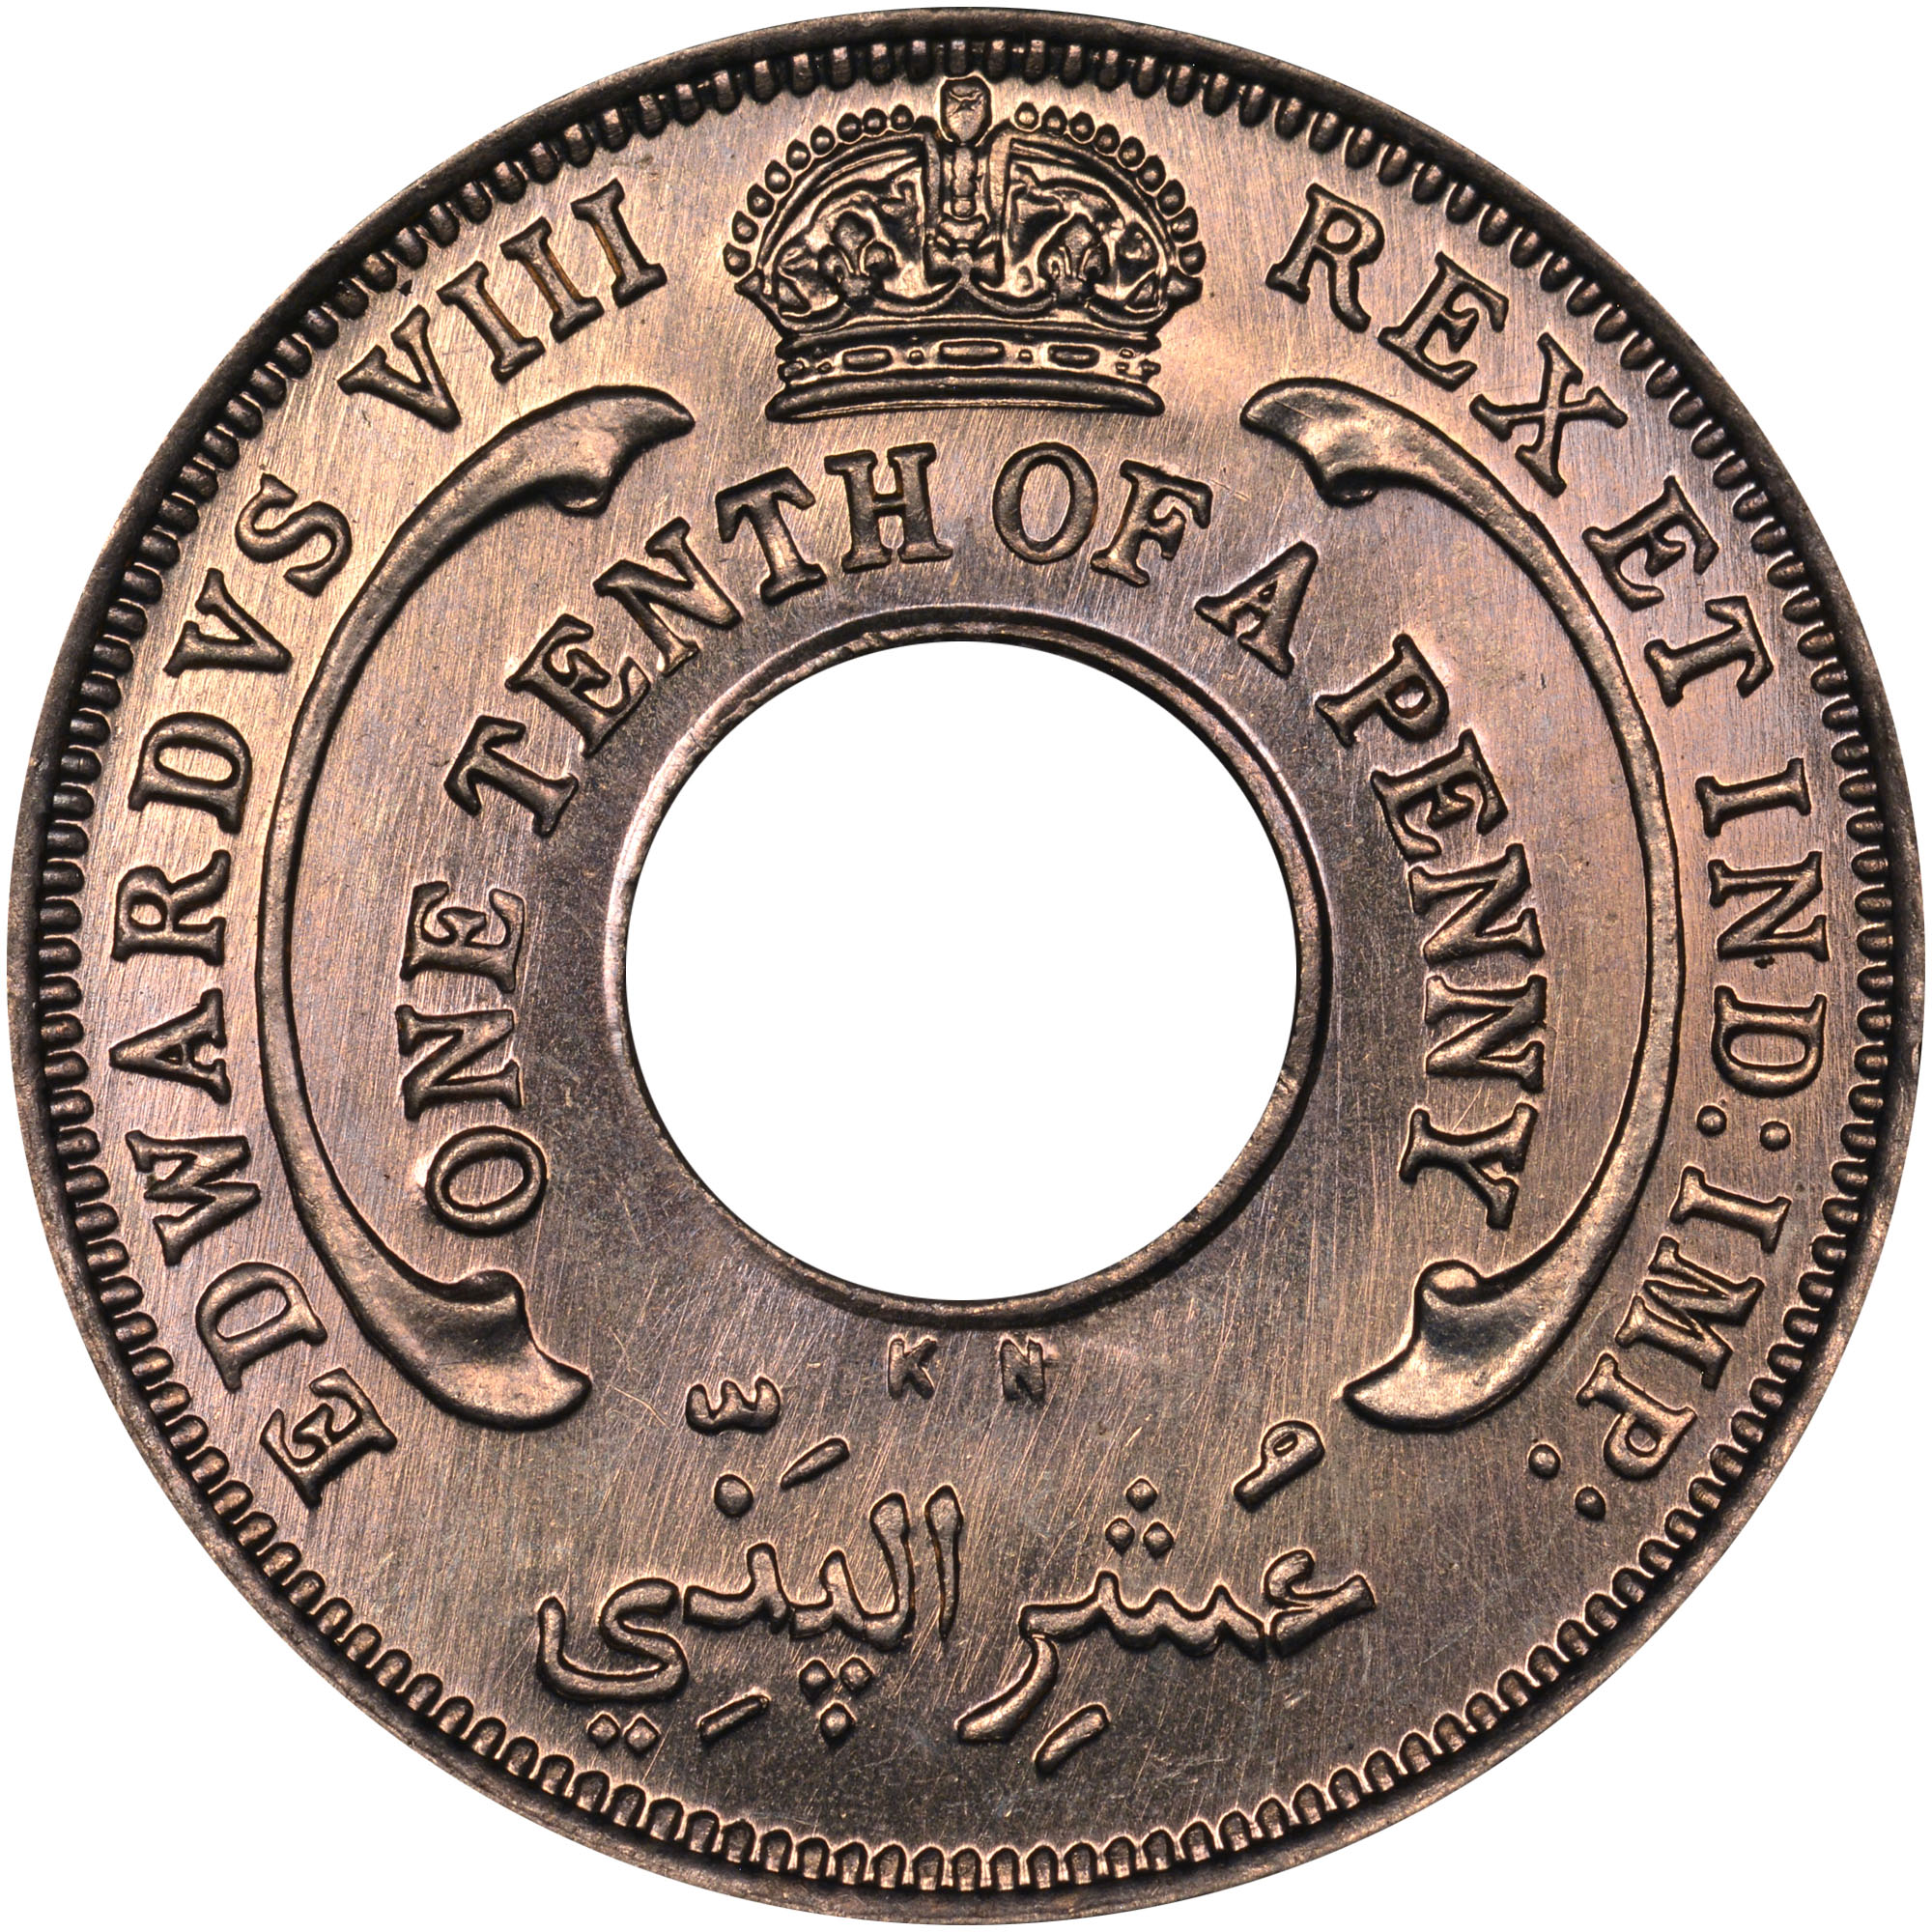 1936 British West Africa 1/10 Penny obverse